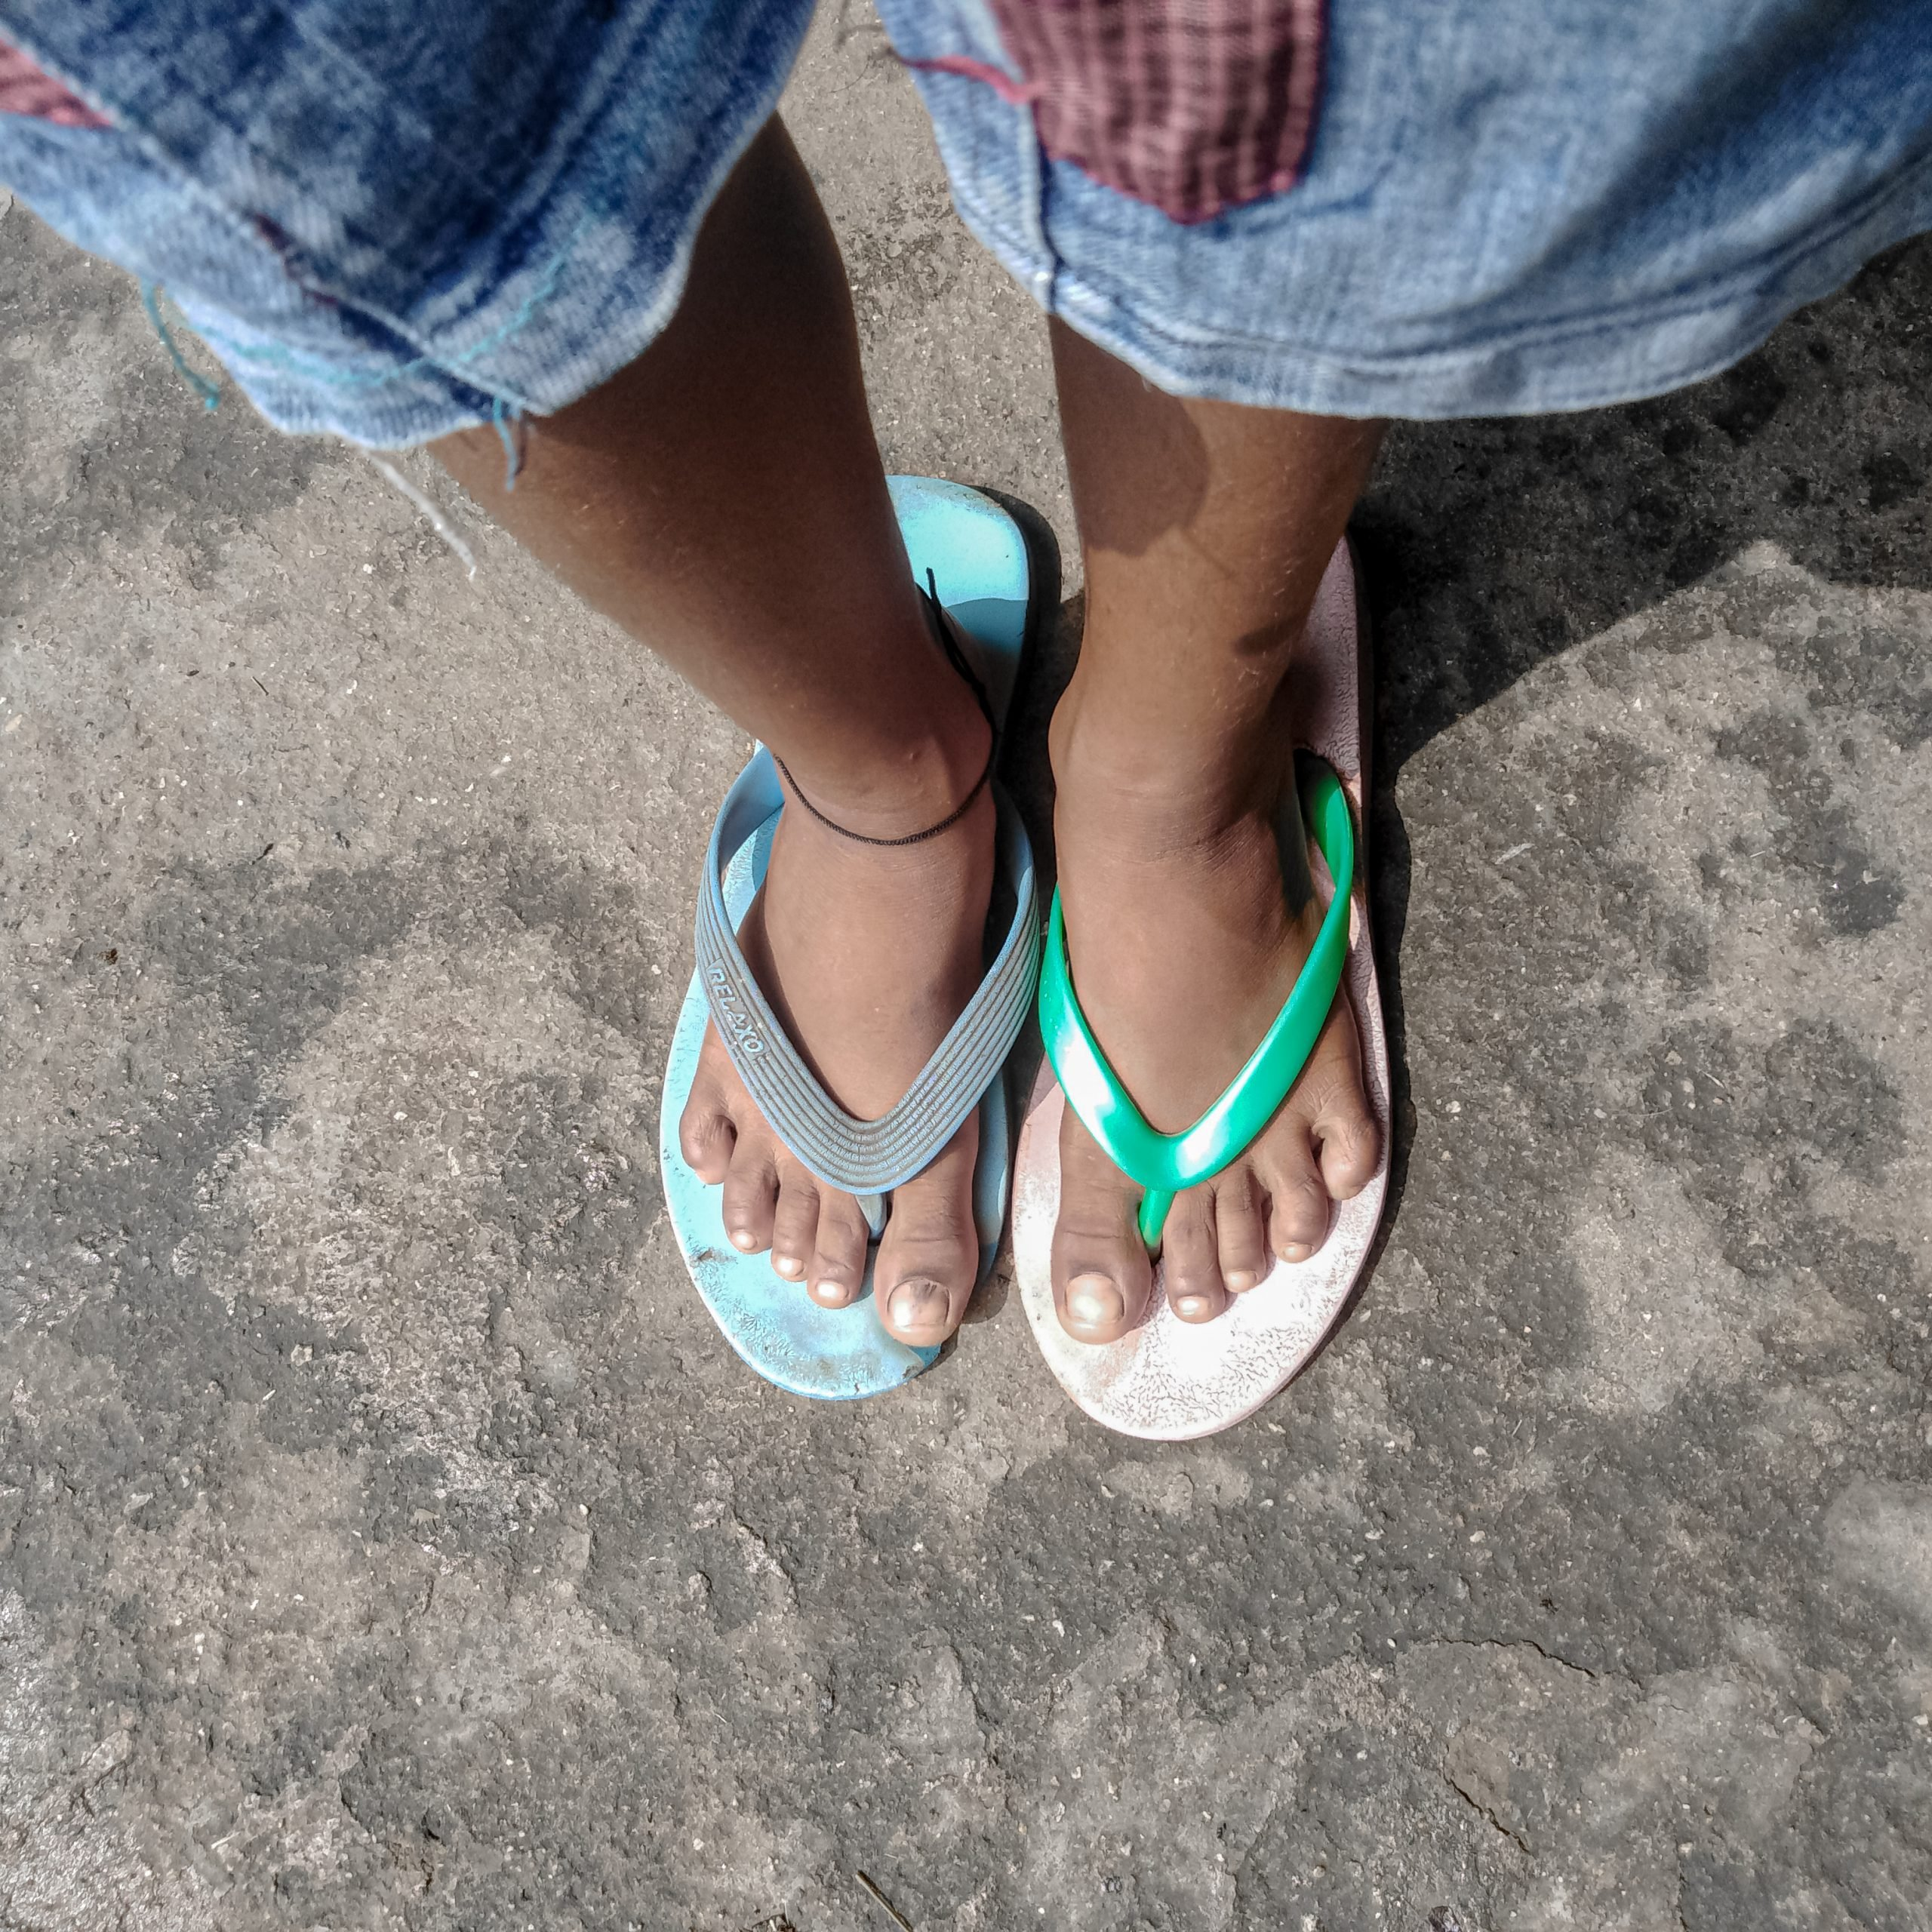 Wearing different slippers